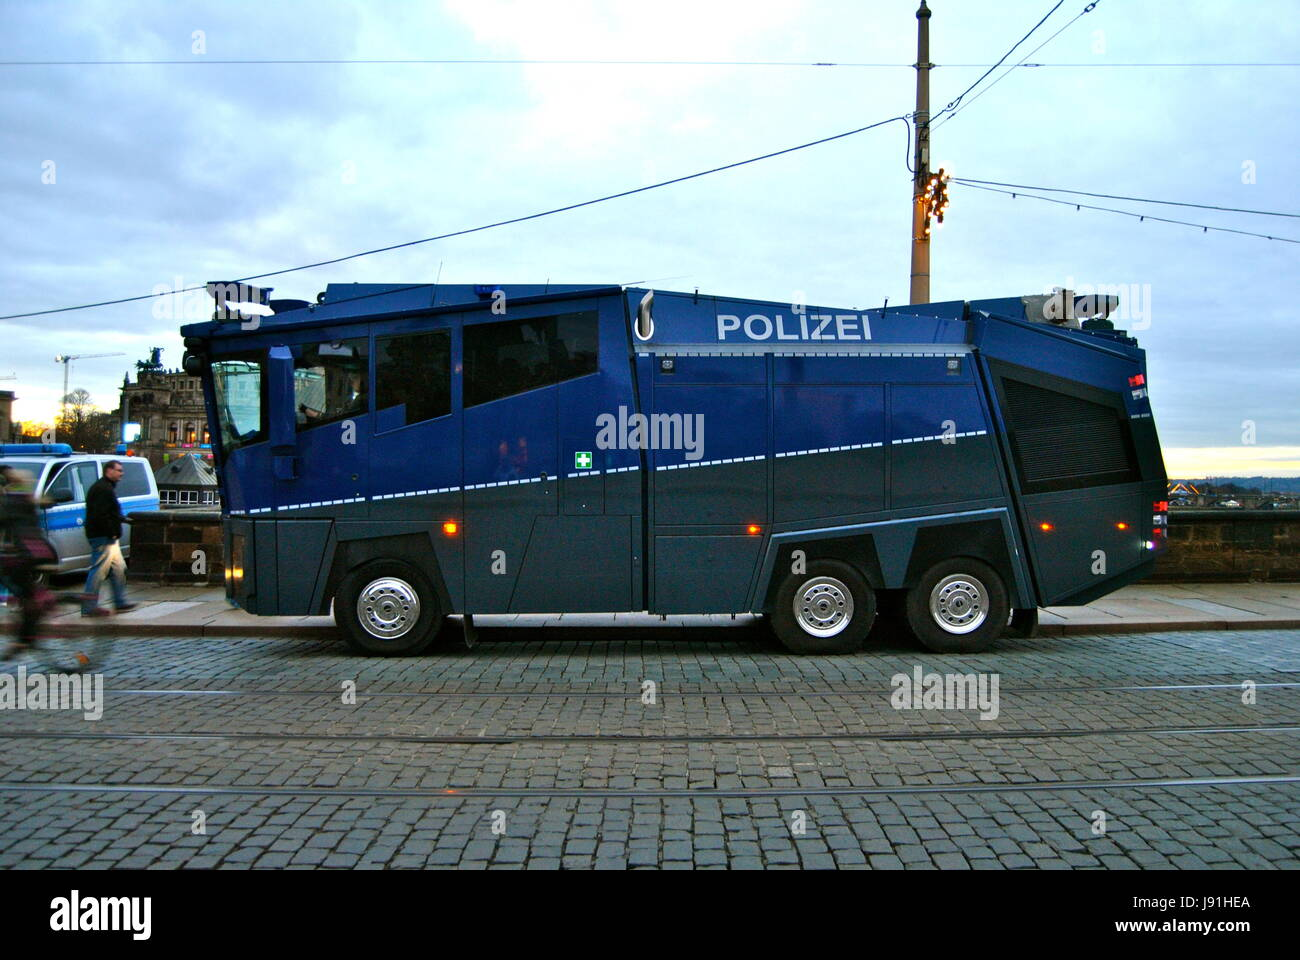 Police water cannon before Pegida rally, Dresden, Germany - Stock Image